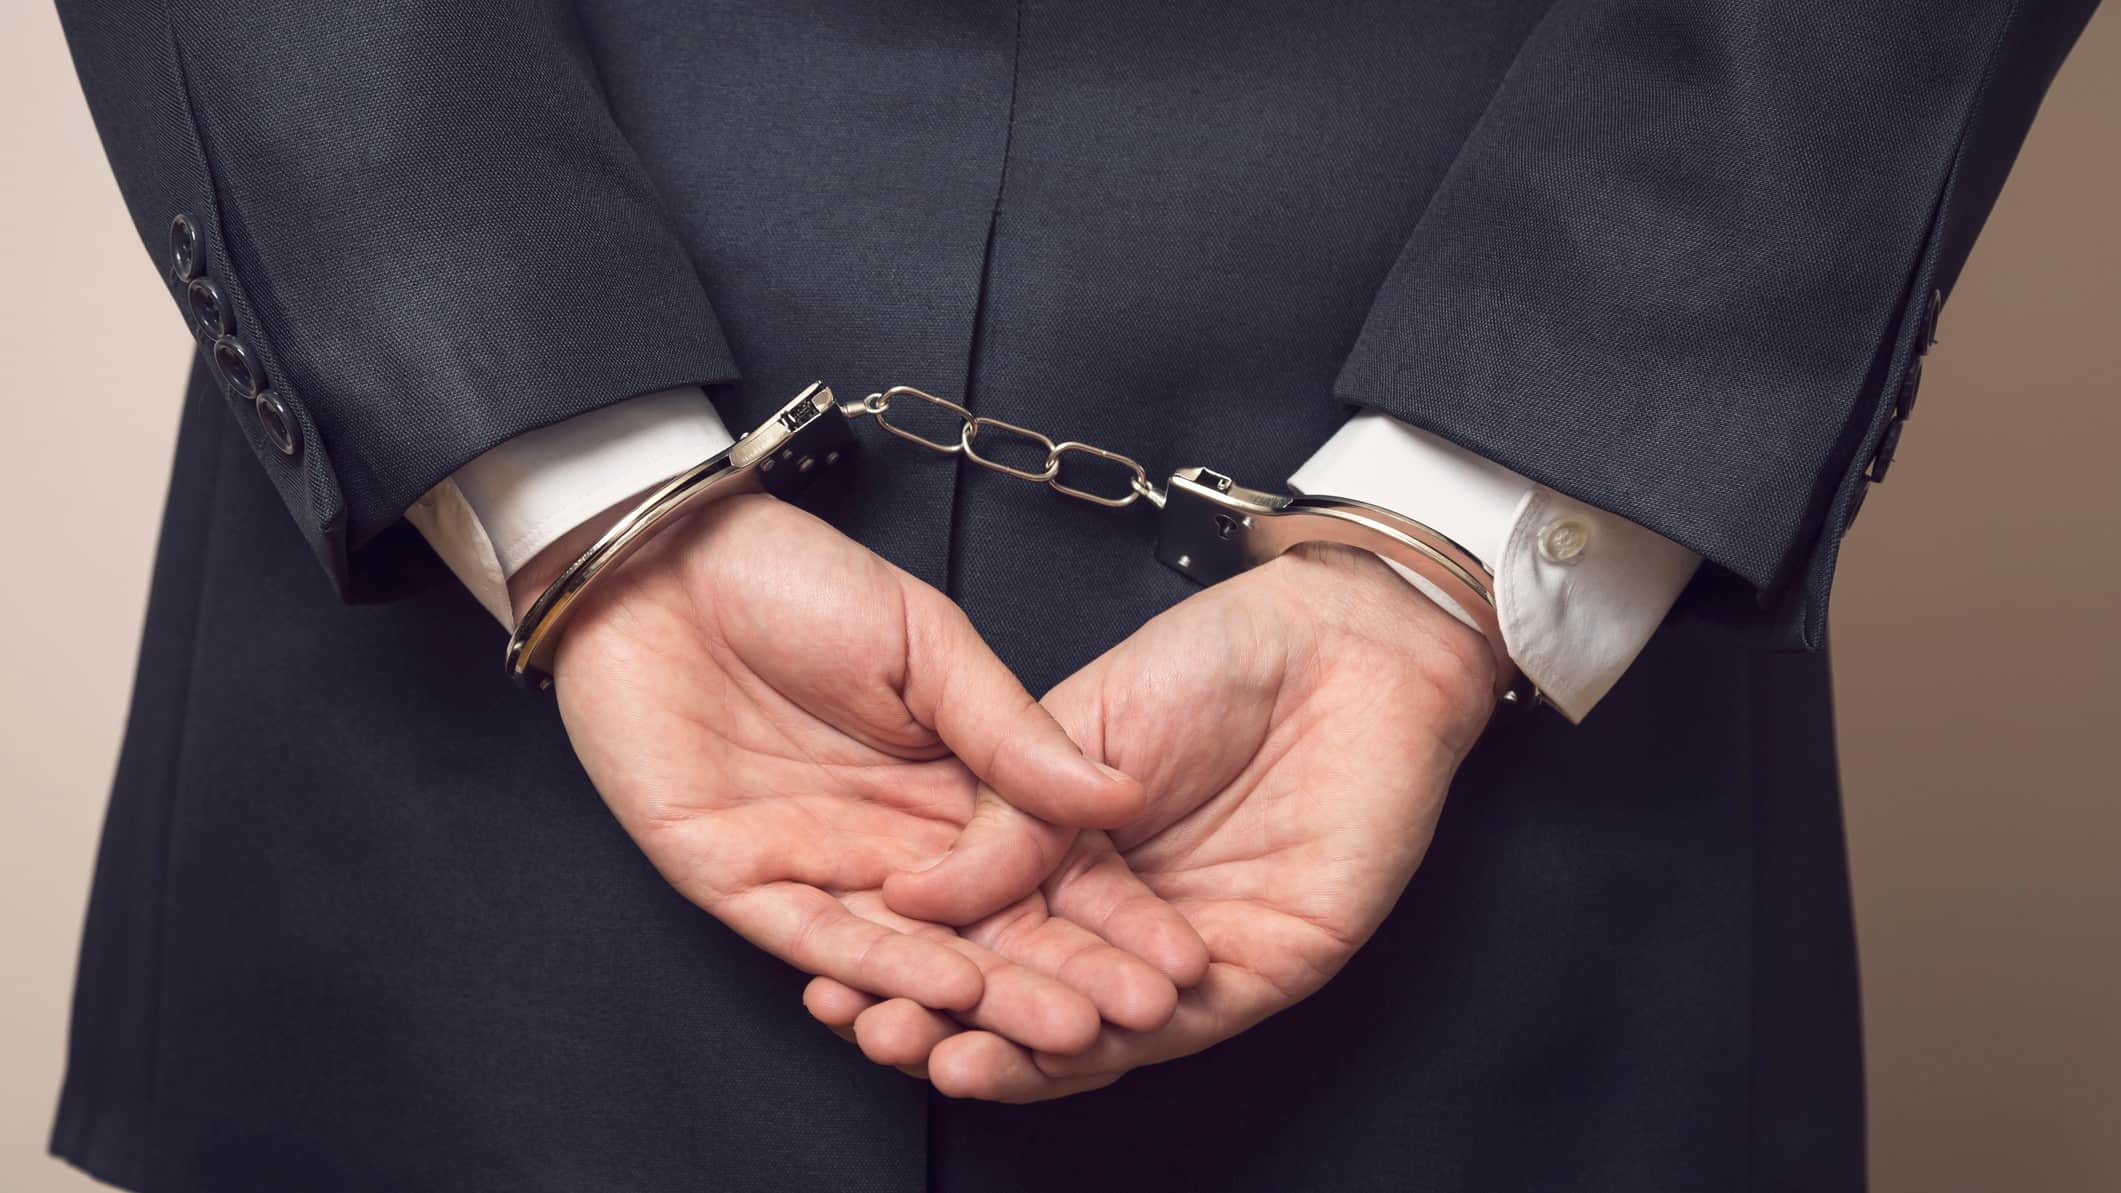 business man with hands handcuffed behind back